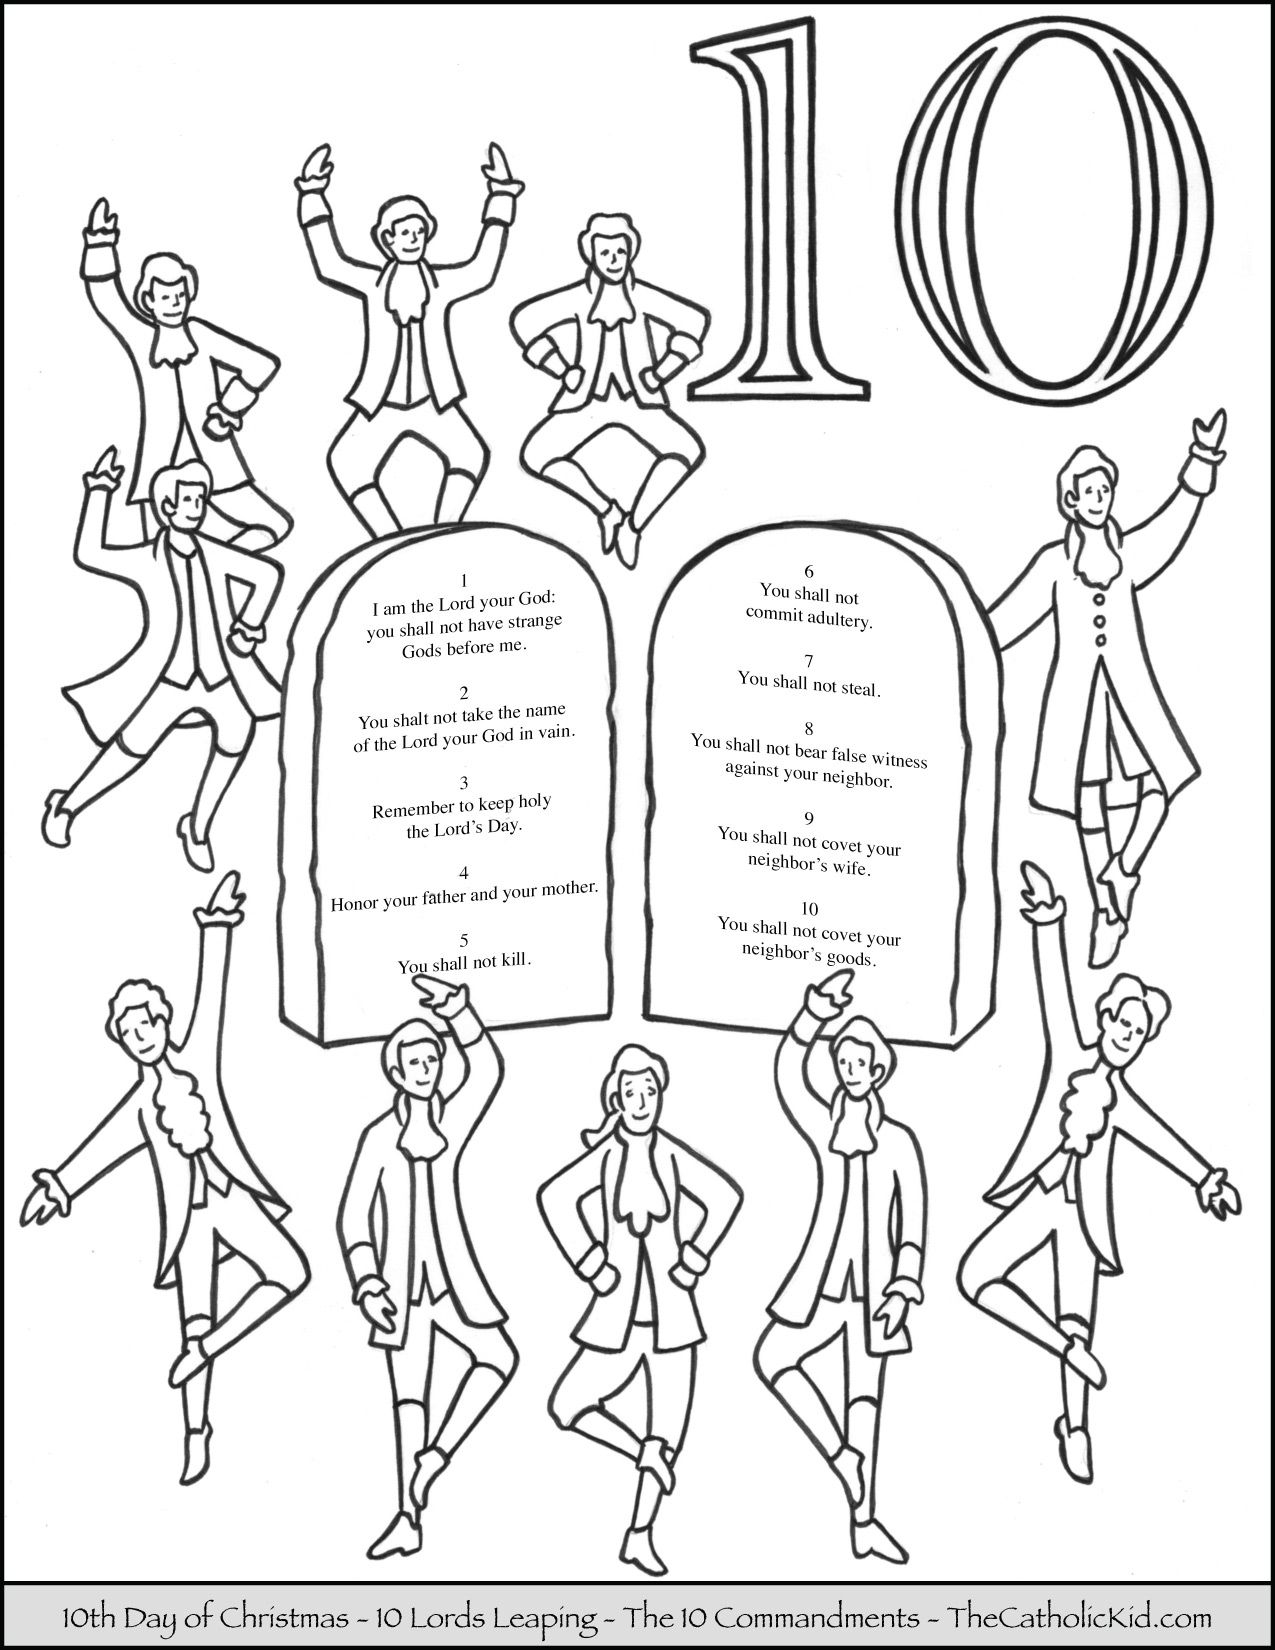 12 days of christmas coloring pages 12 days of christmas coloring pages thecatholickidcom days of coloring christmas 12 pages